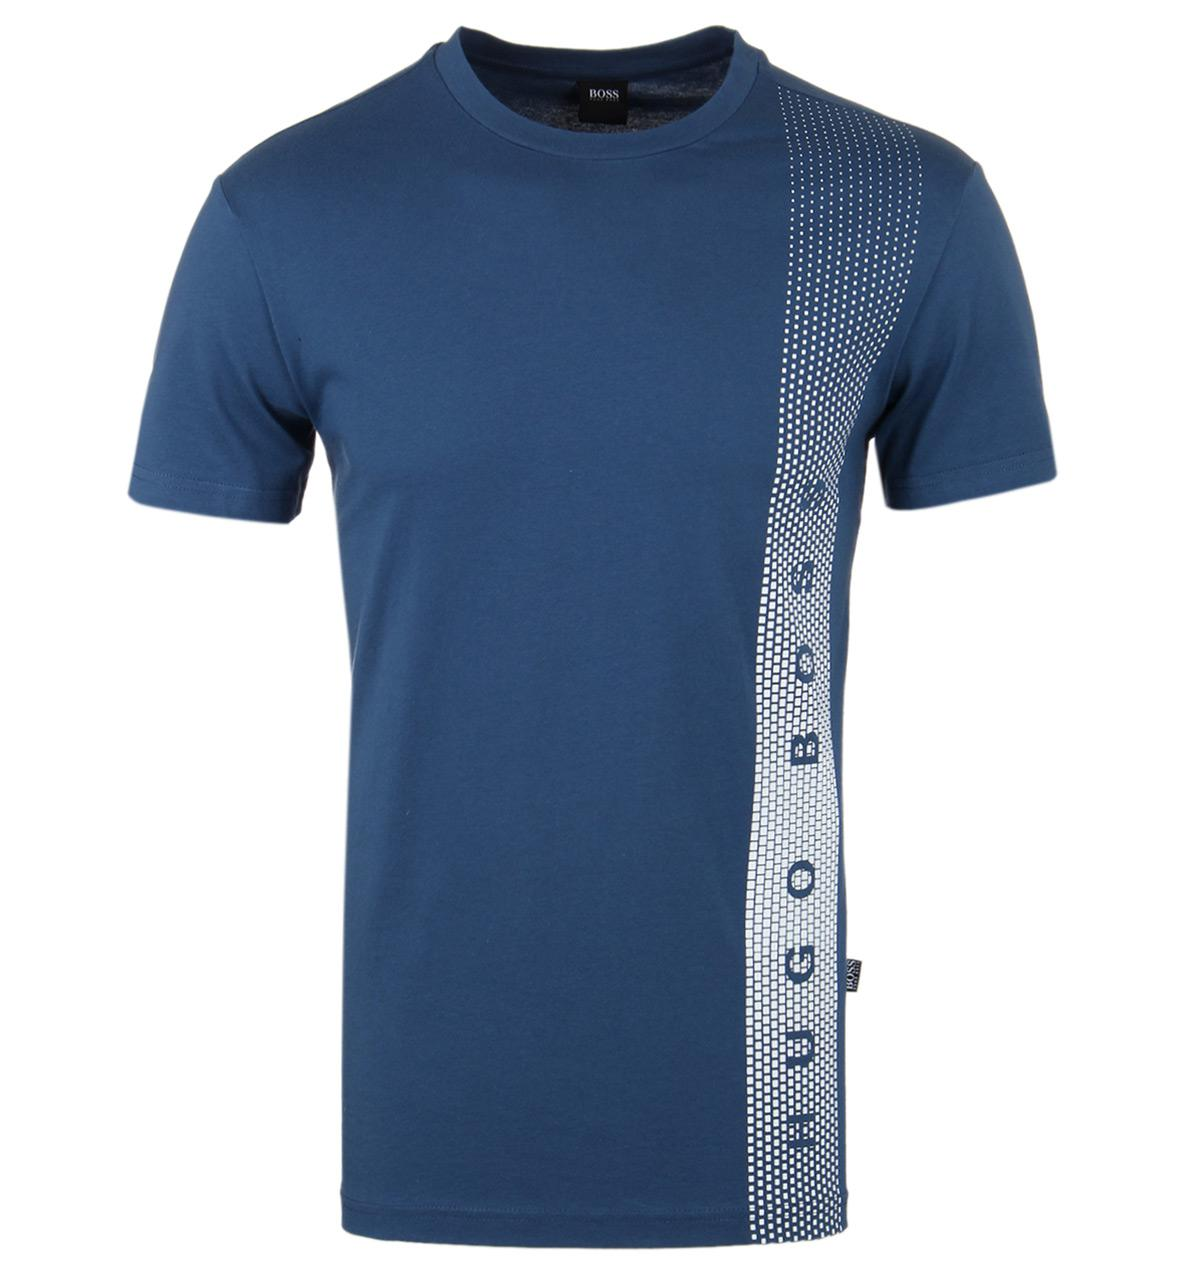 Boss dark blue slim fit rn uv protection t shirt in blue for Uv protection t shirt